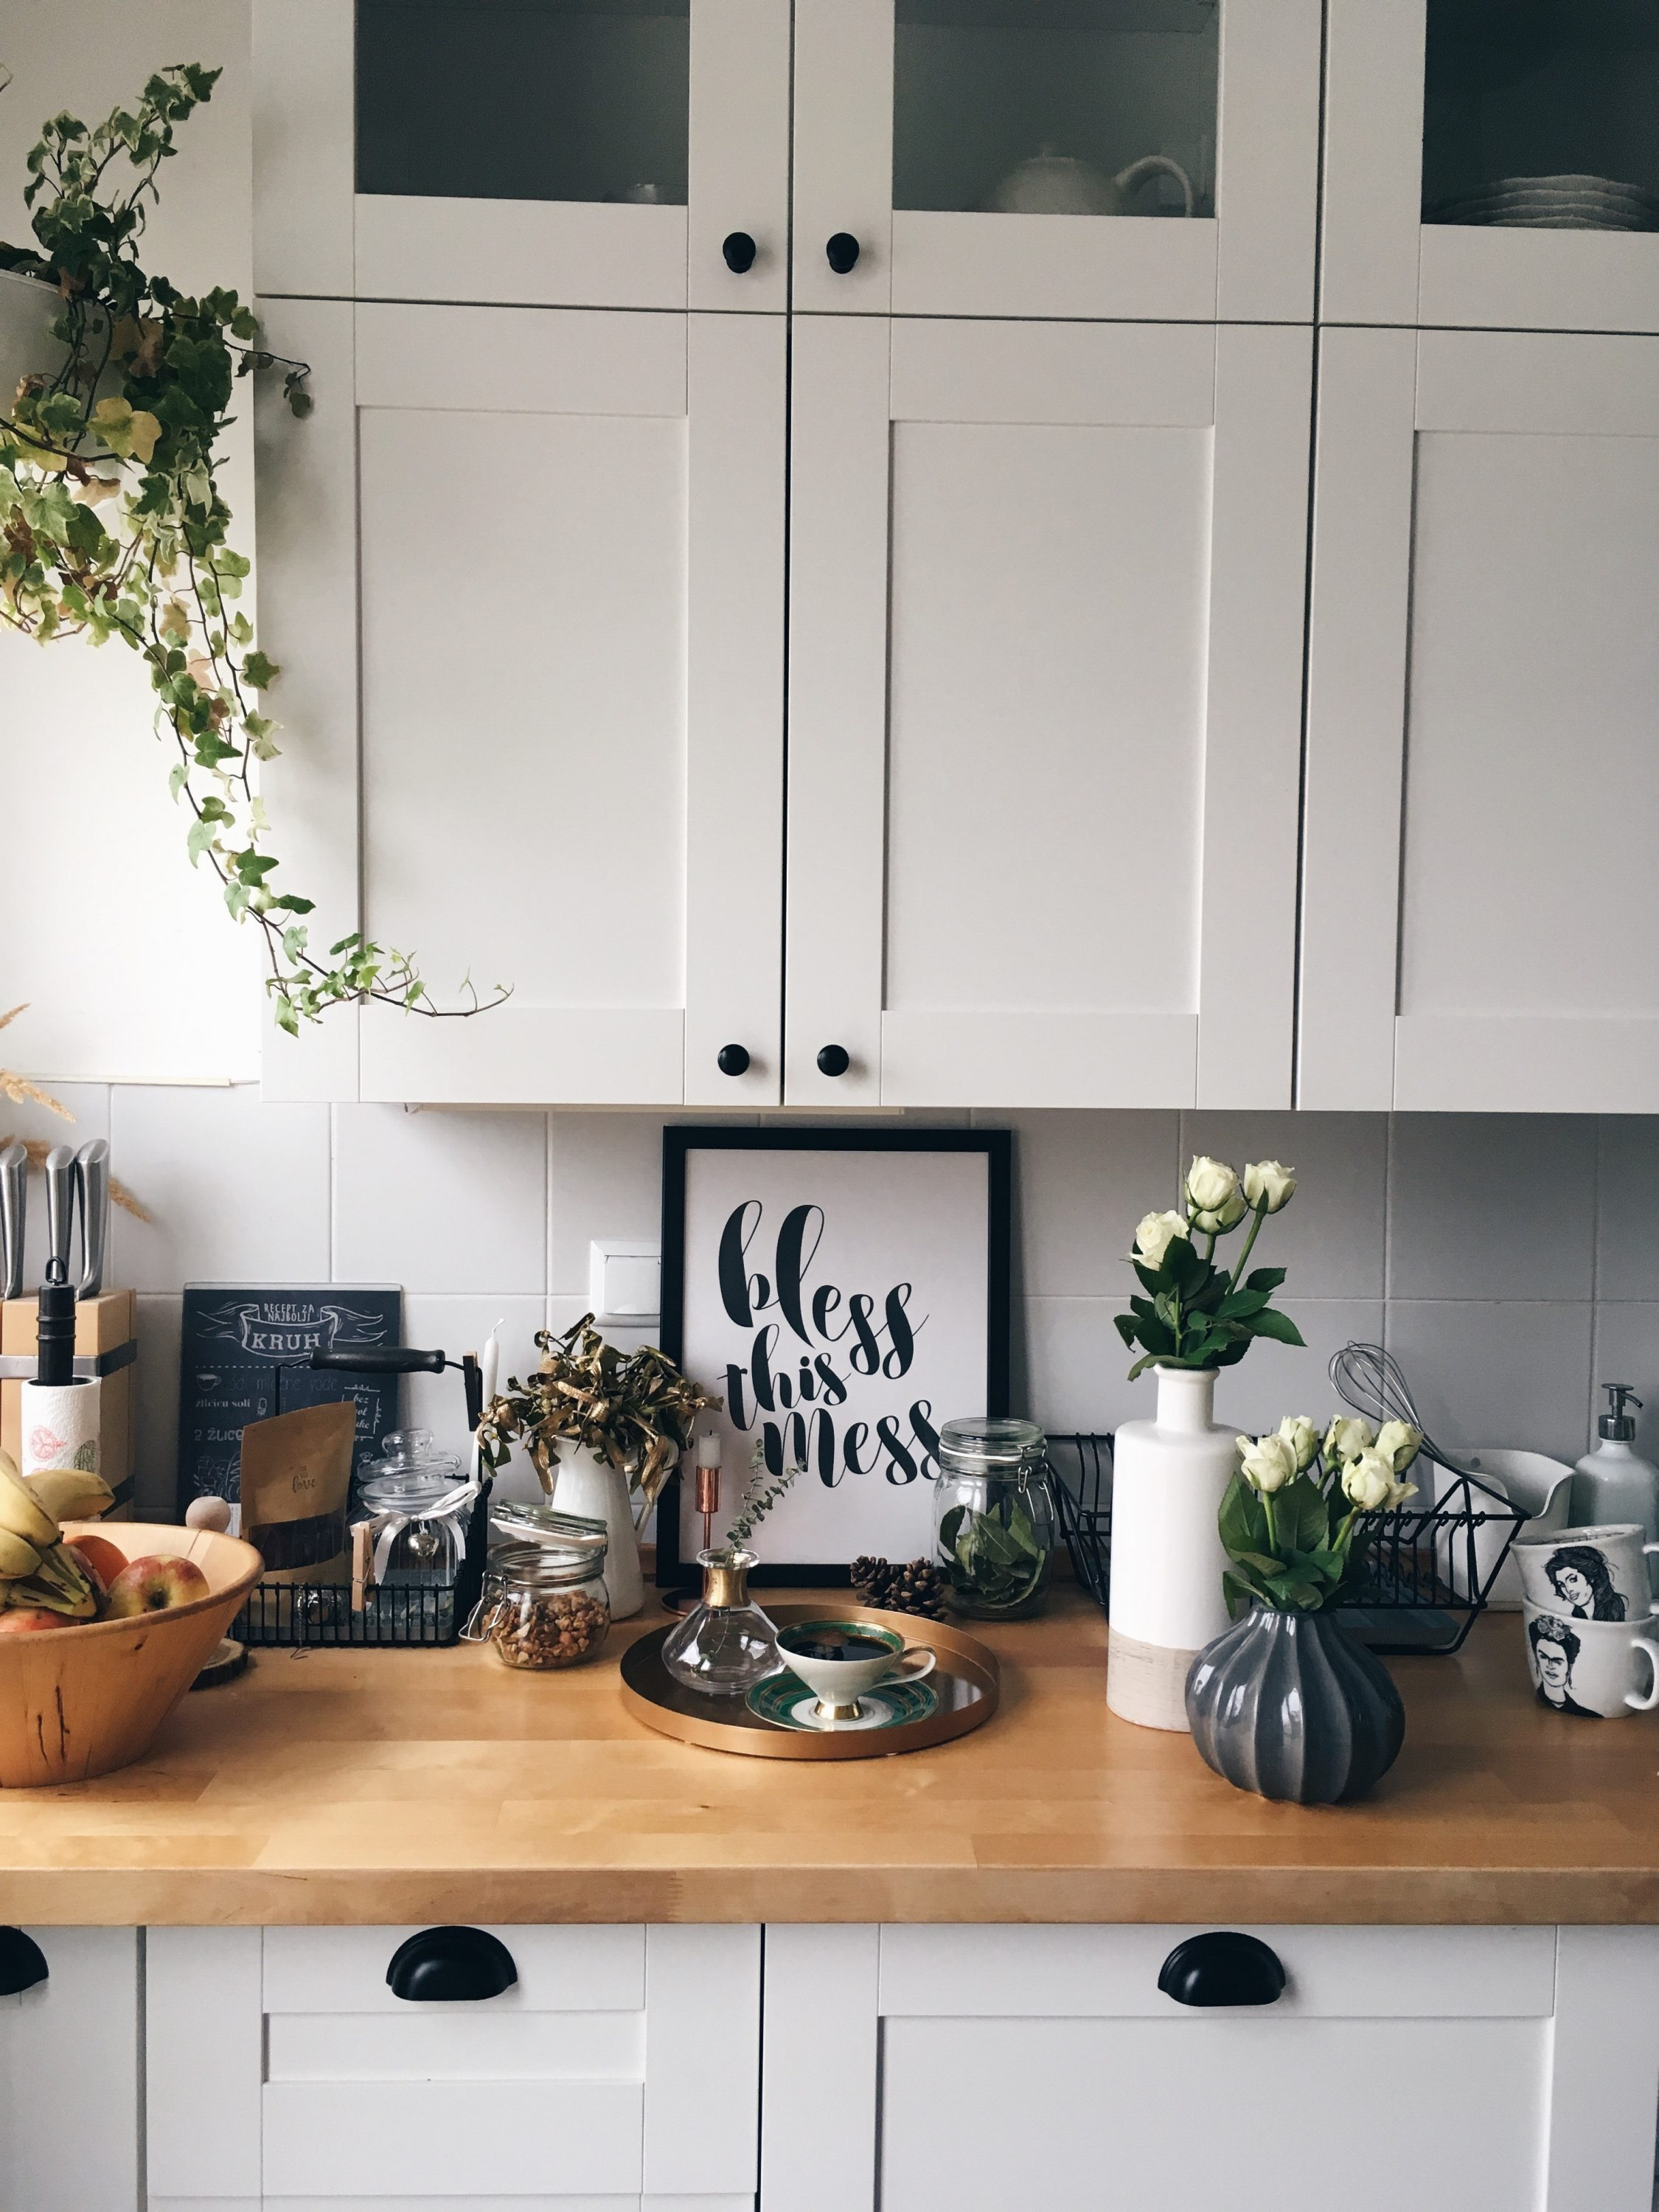 kitchen desihn interier interijer simplicity scandinavian ikea bless this mess messy kitchen flowers white classic beautiful interior inspiration stylist more less ines